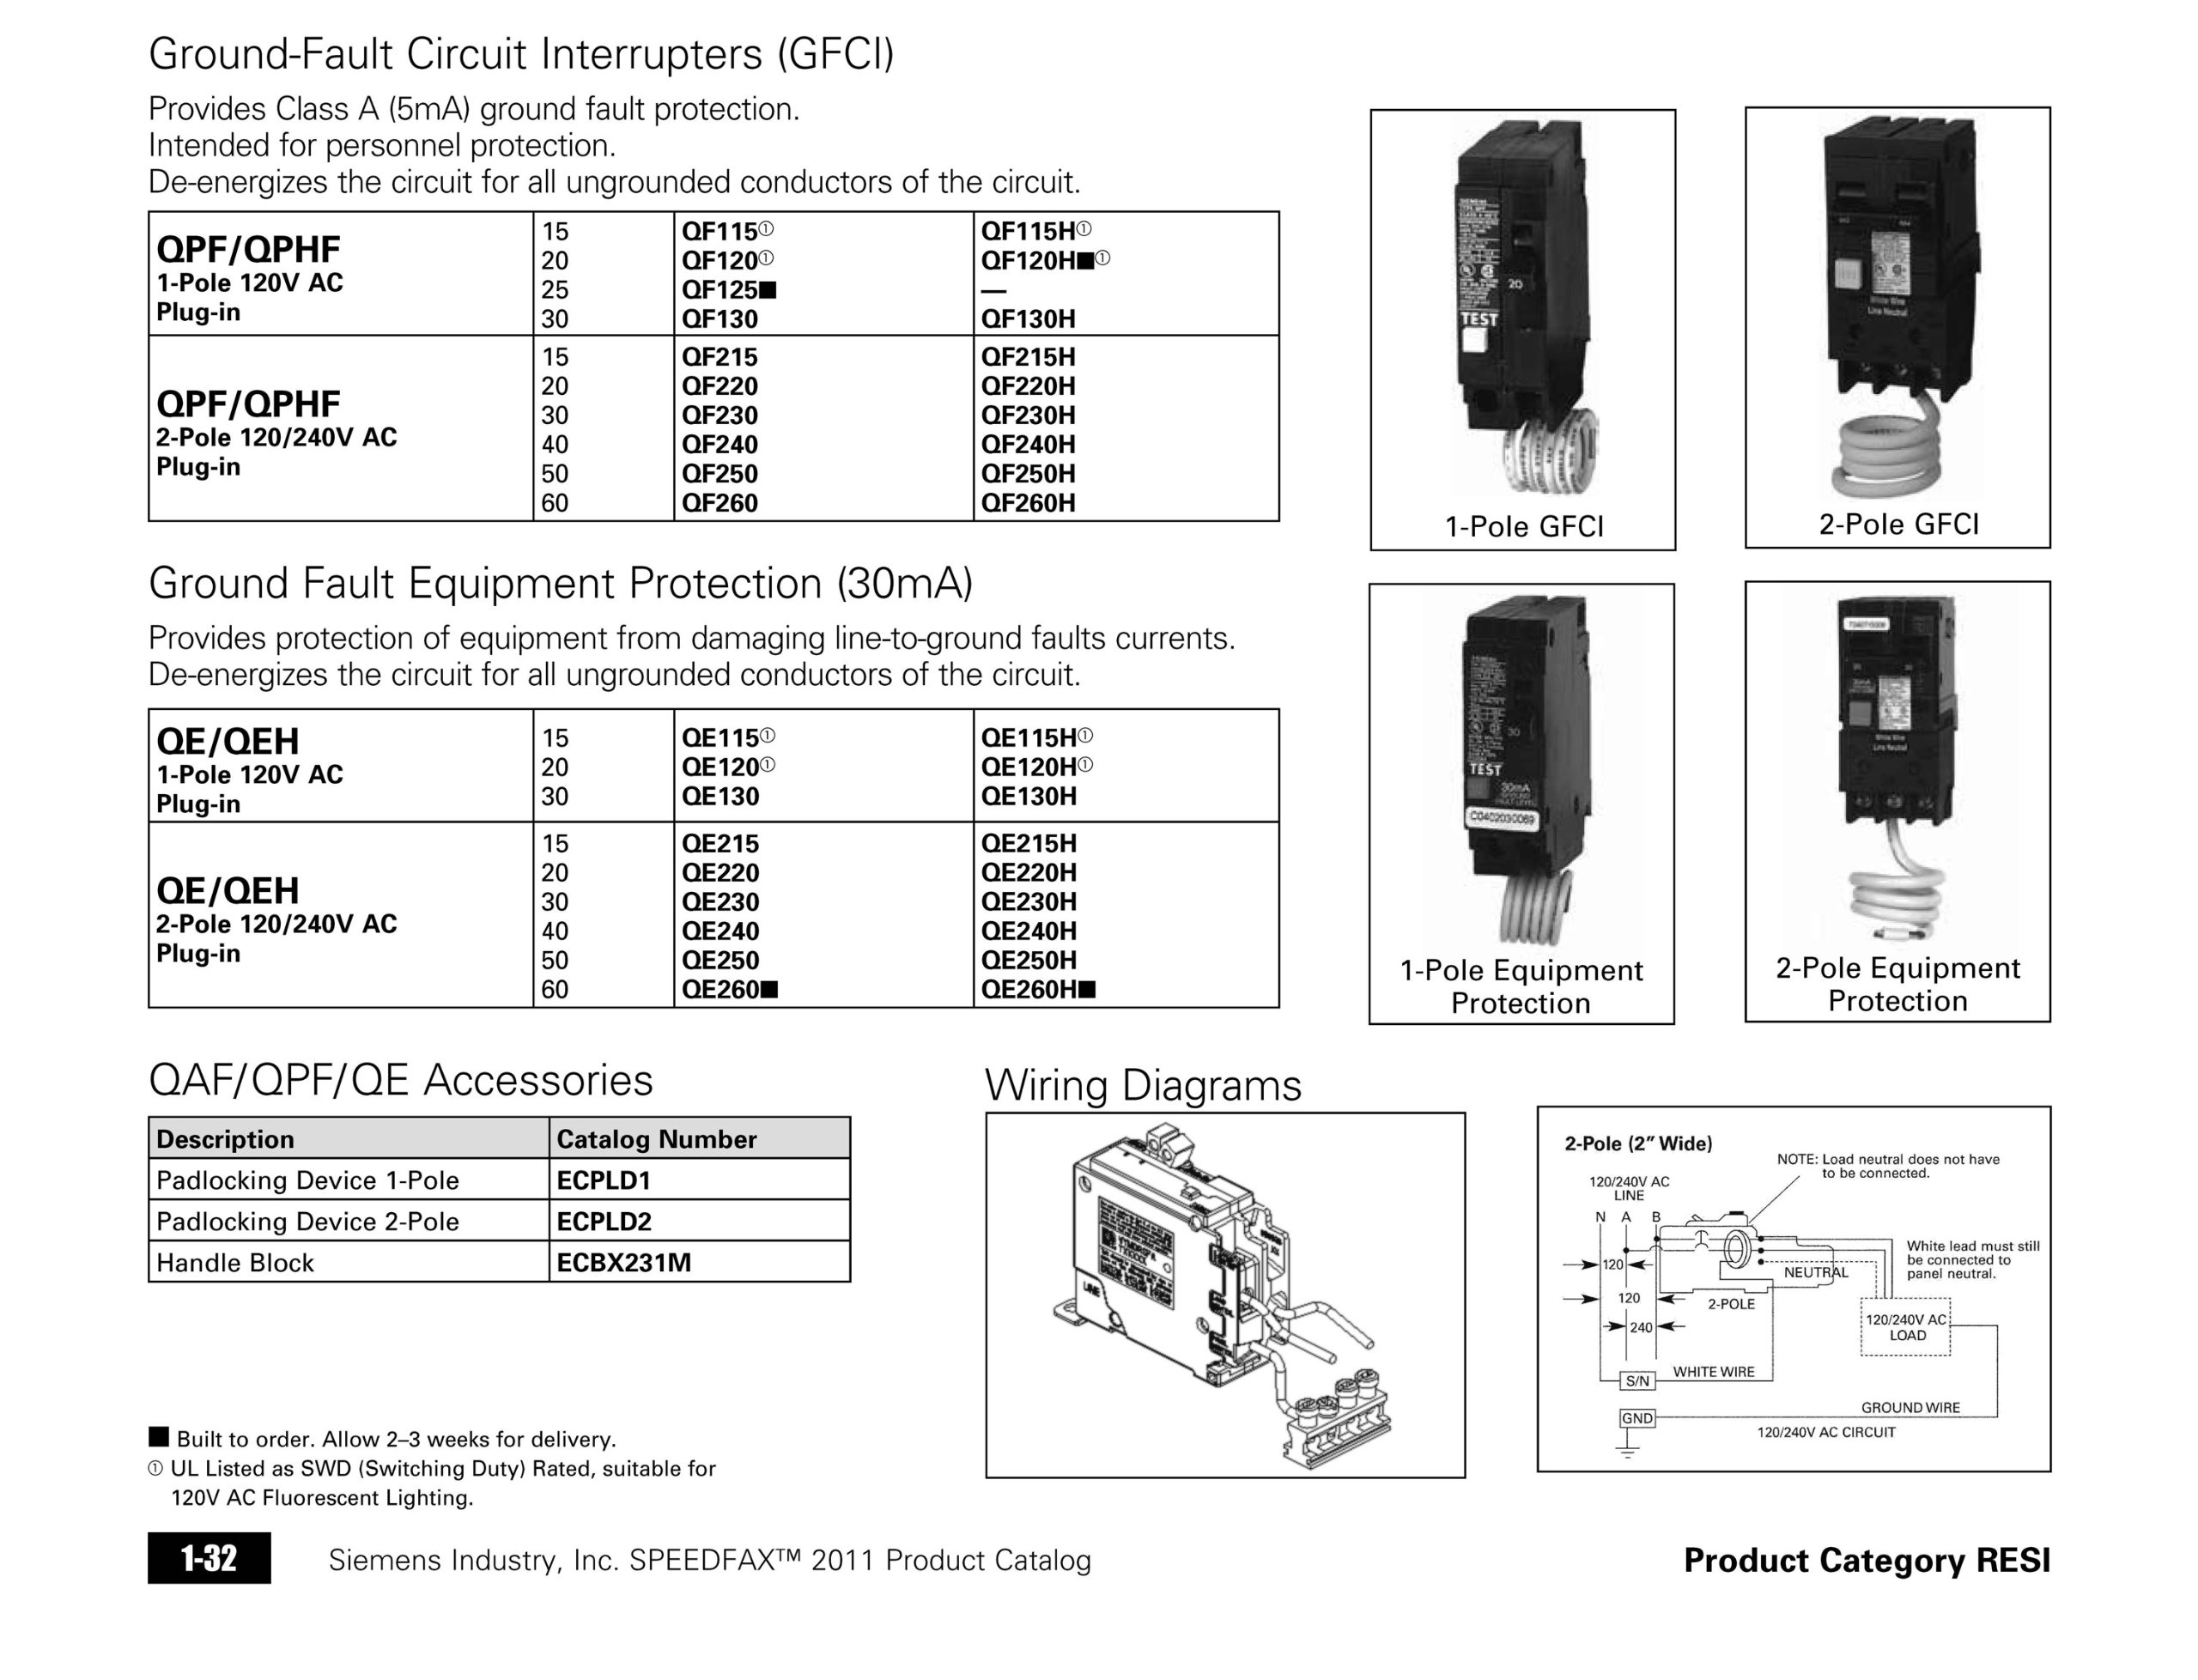 Siemens Qf220 20 Amp 2 Pole 240 Volt Ground Fault Circuit Interrupters Interrupter Discontinued By Manufacturer Tools